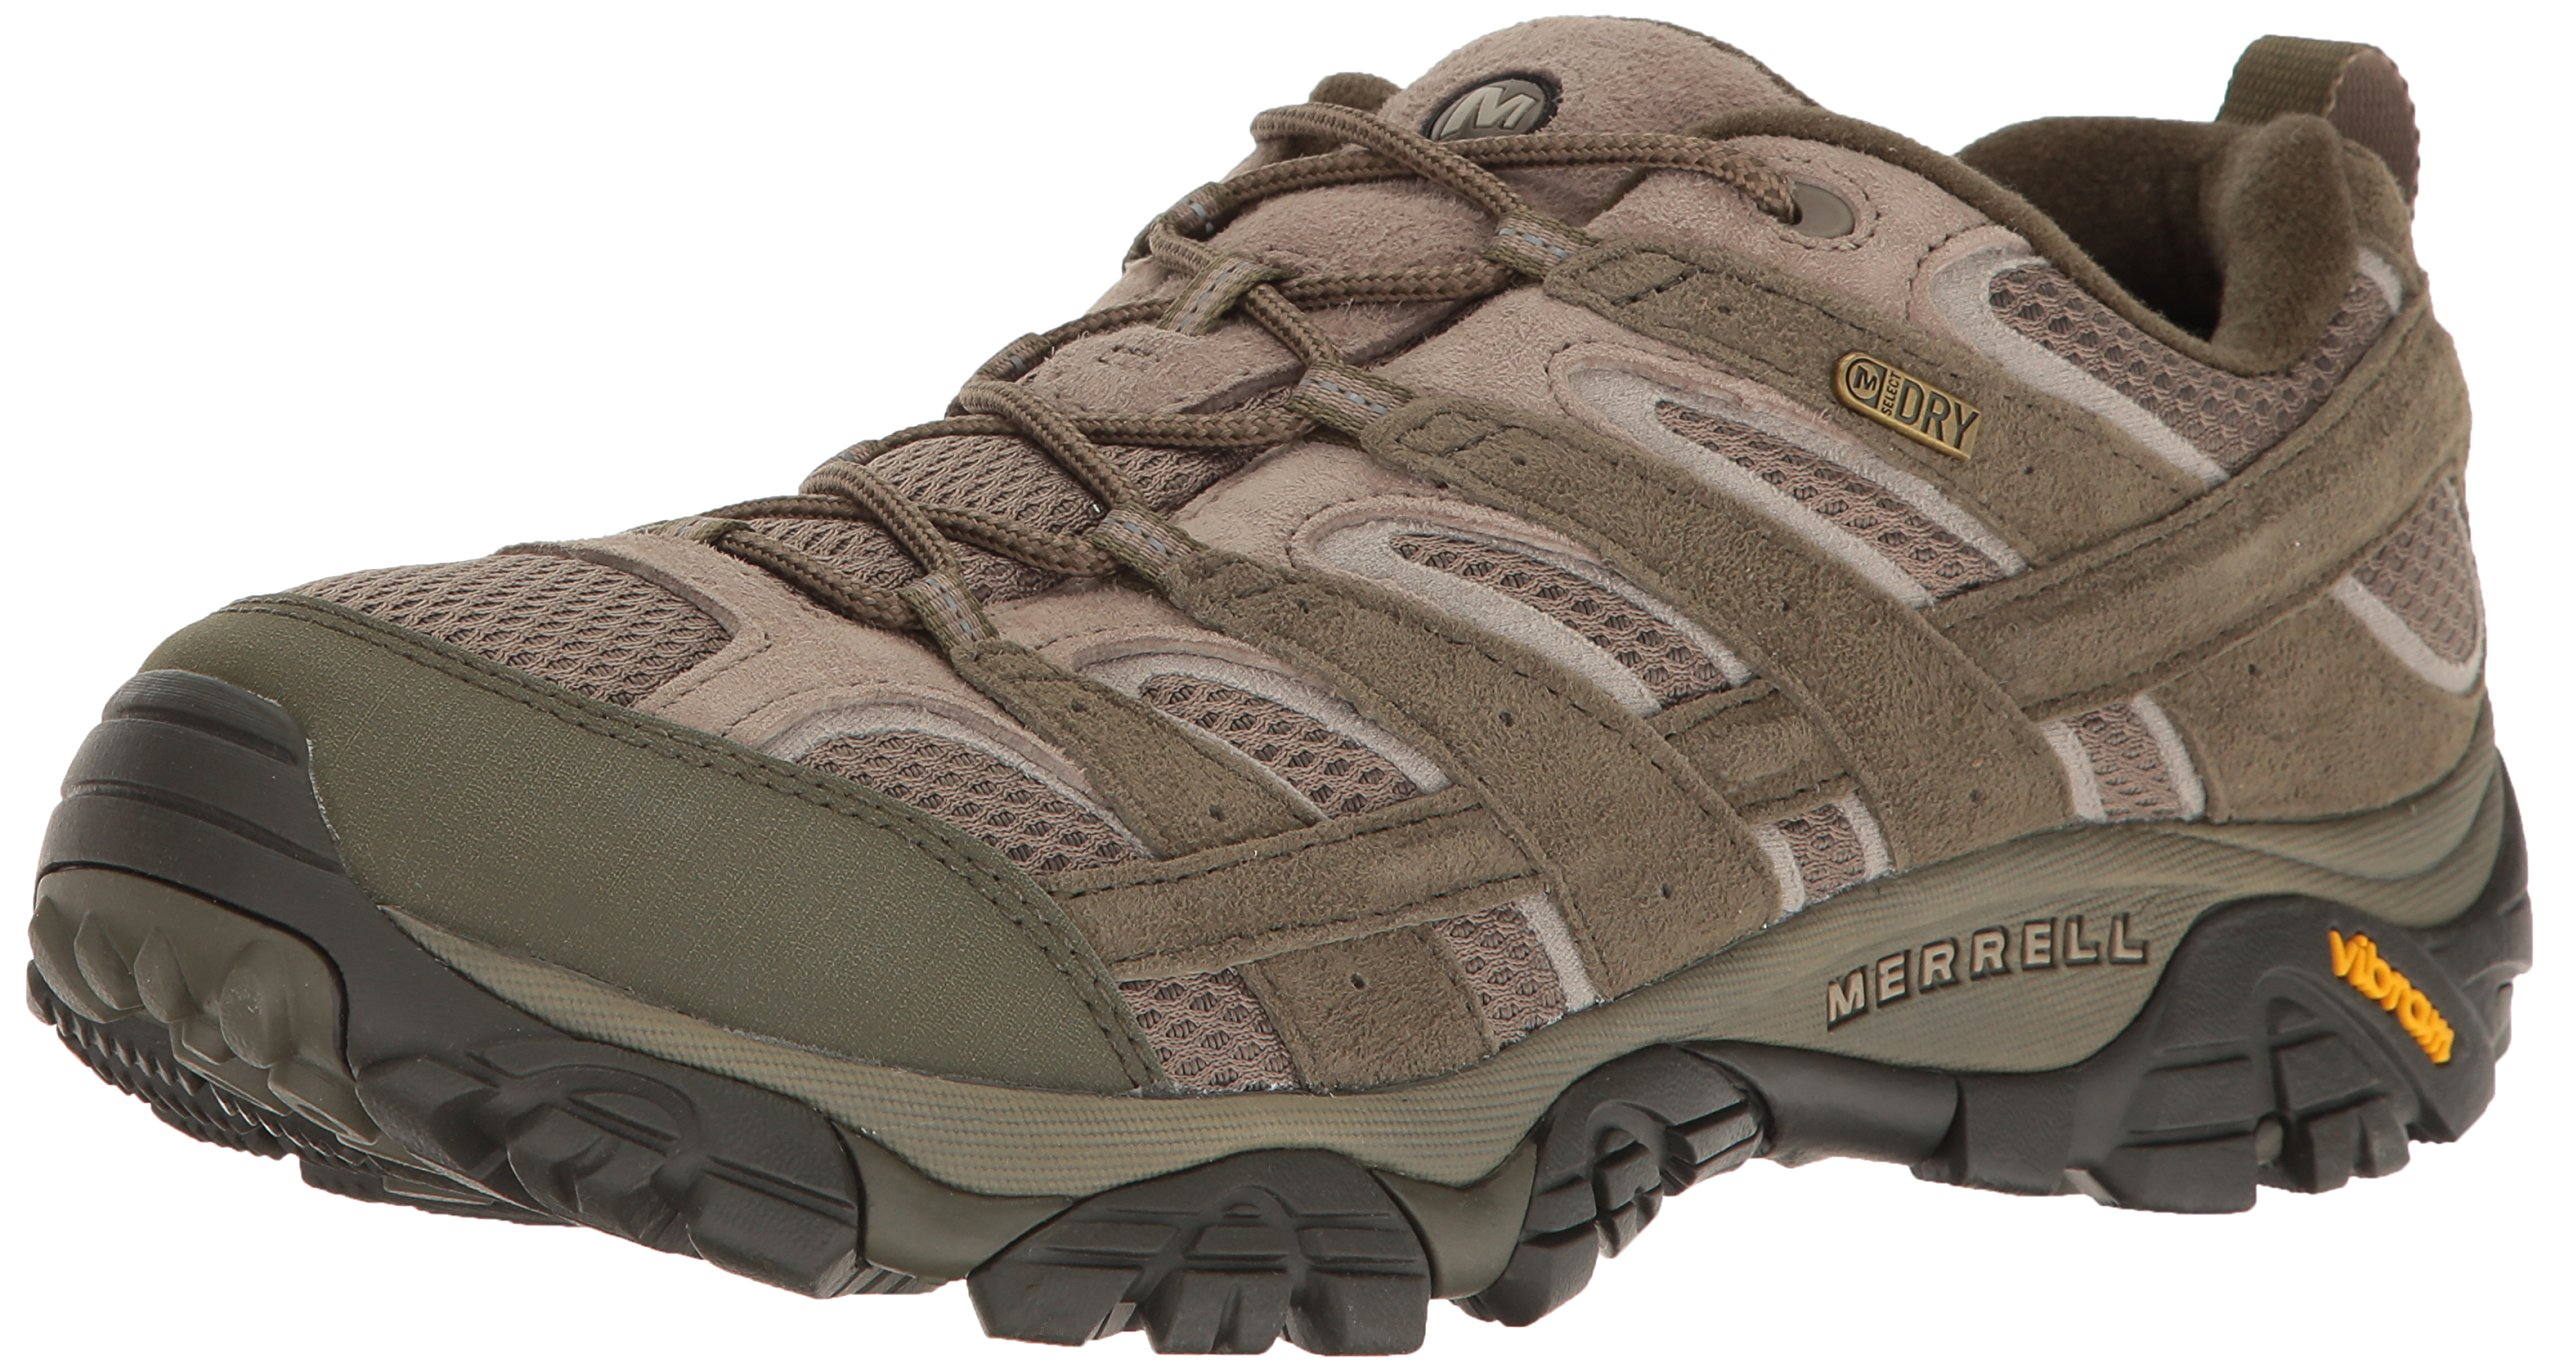 Merrell Men's Moab 2 Waterproof Hiking Shoe, Dusty Olive, 7.5 M US